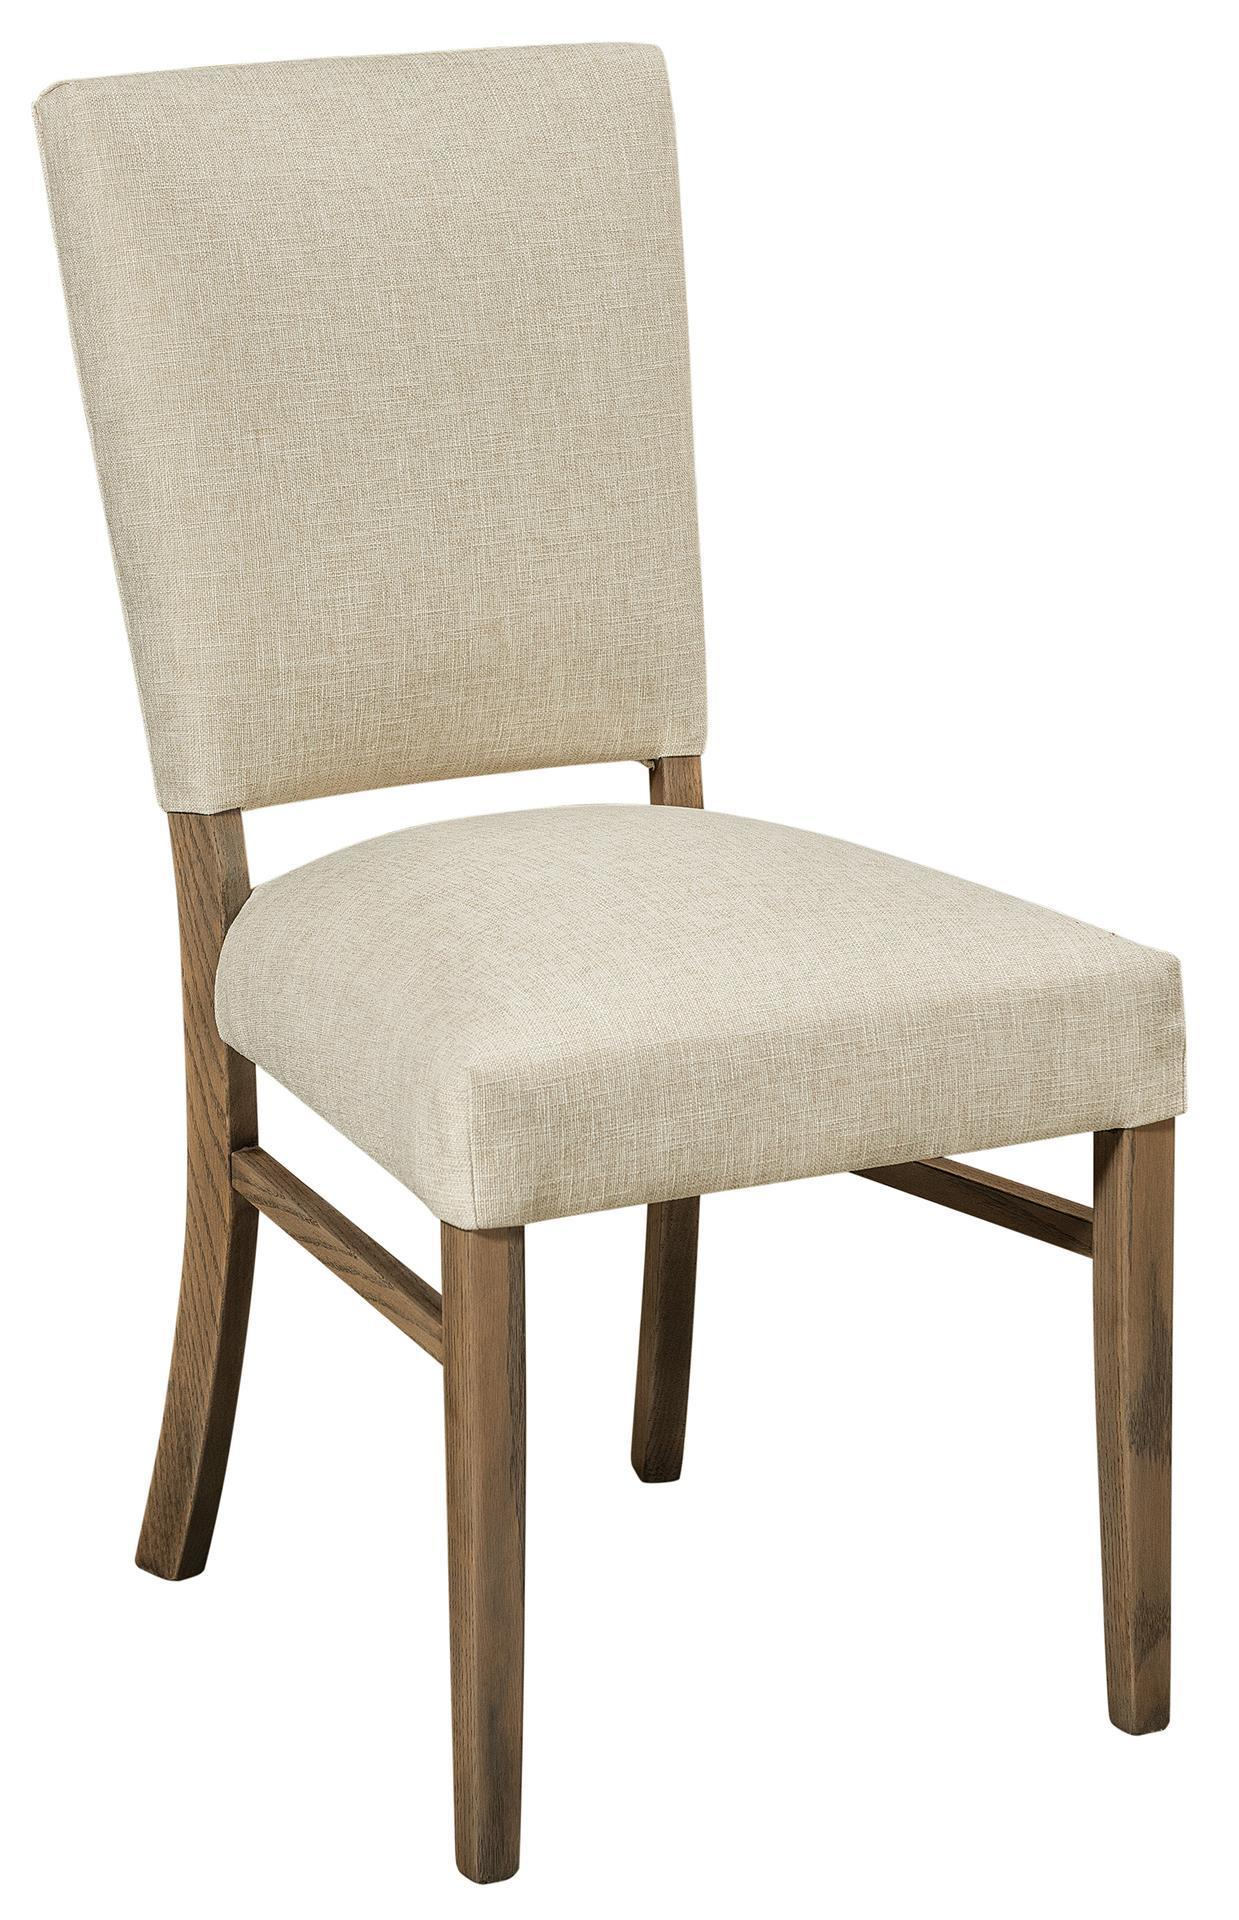 Warner Parsons Chair from DutchCrafters Amish Furniture